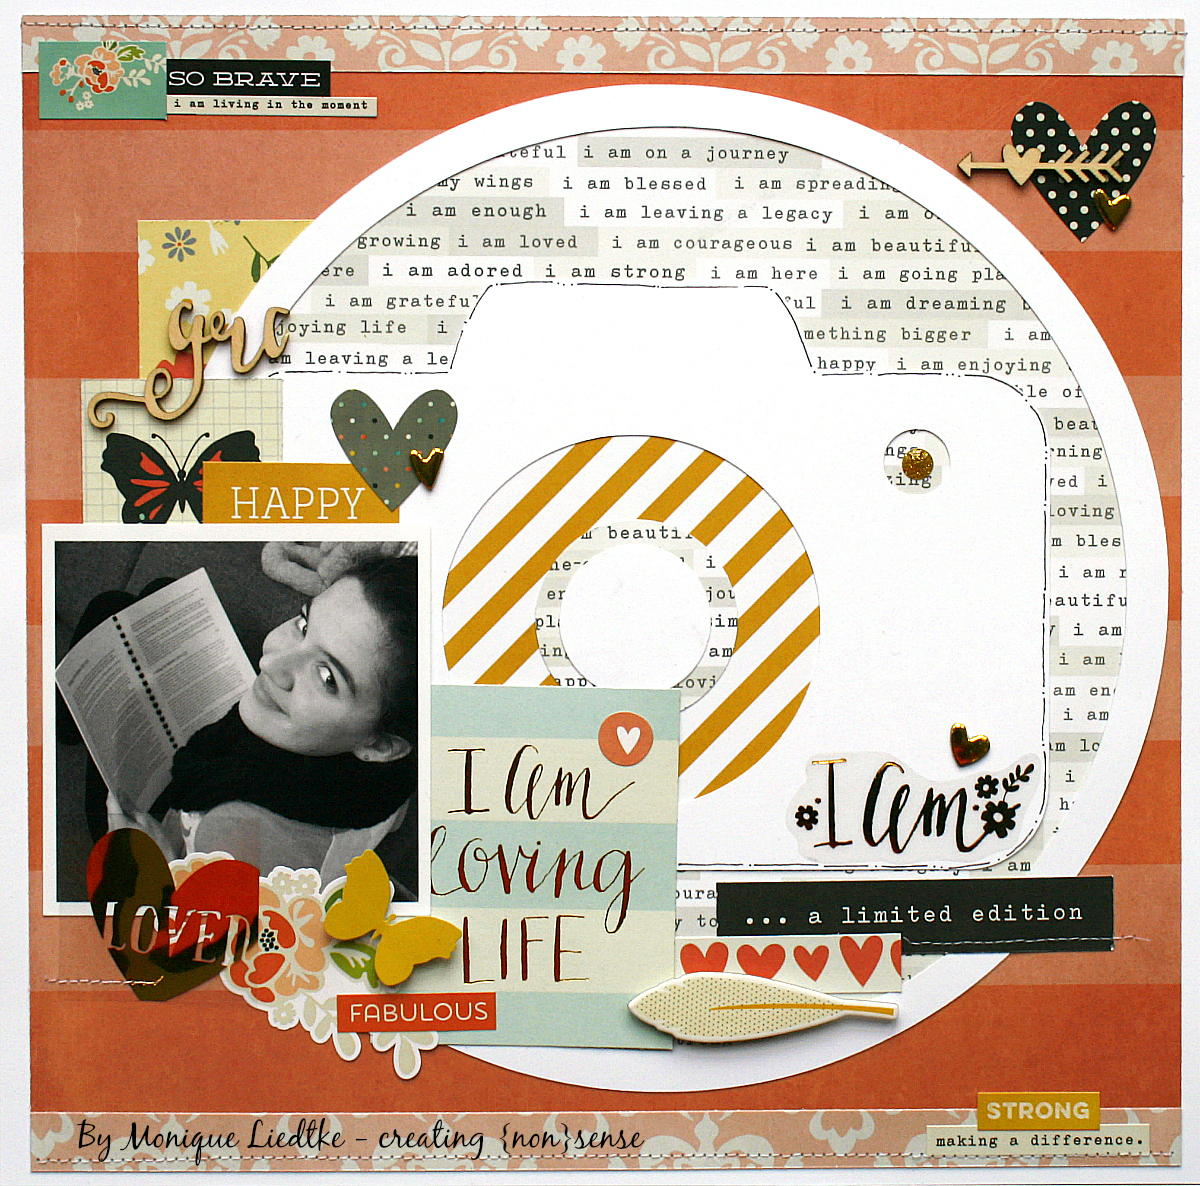 I Am Scrapbook Page by Monique Liedtke featuring 17turtles Digital Cut File Everyday Circle Clips